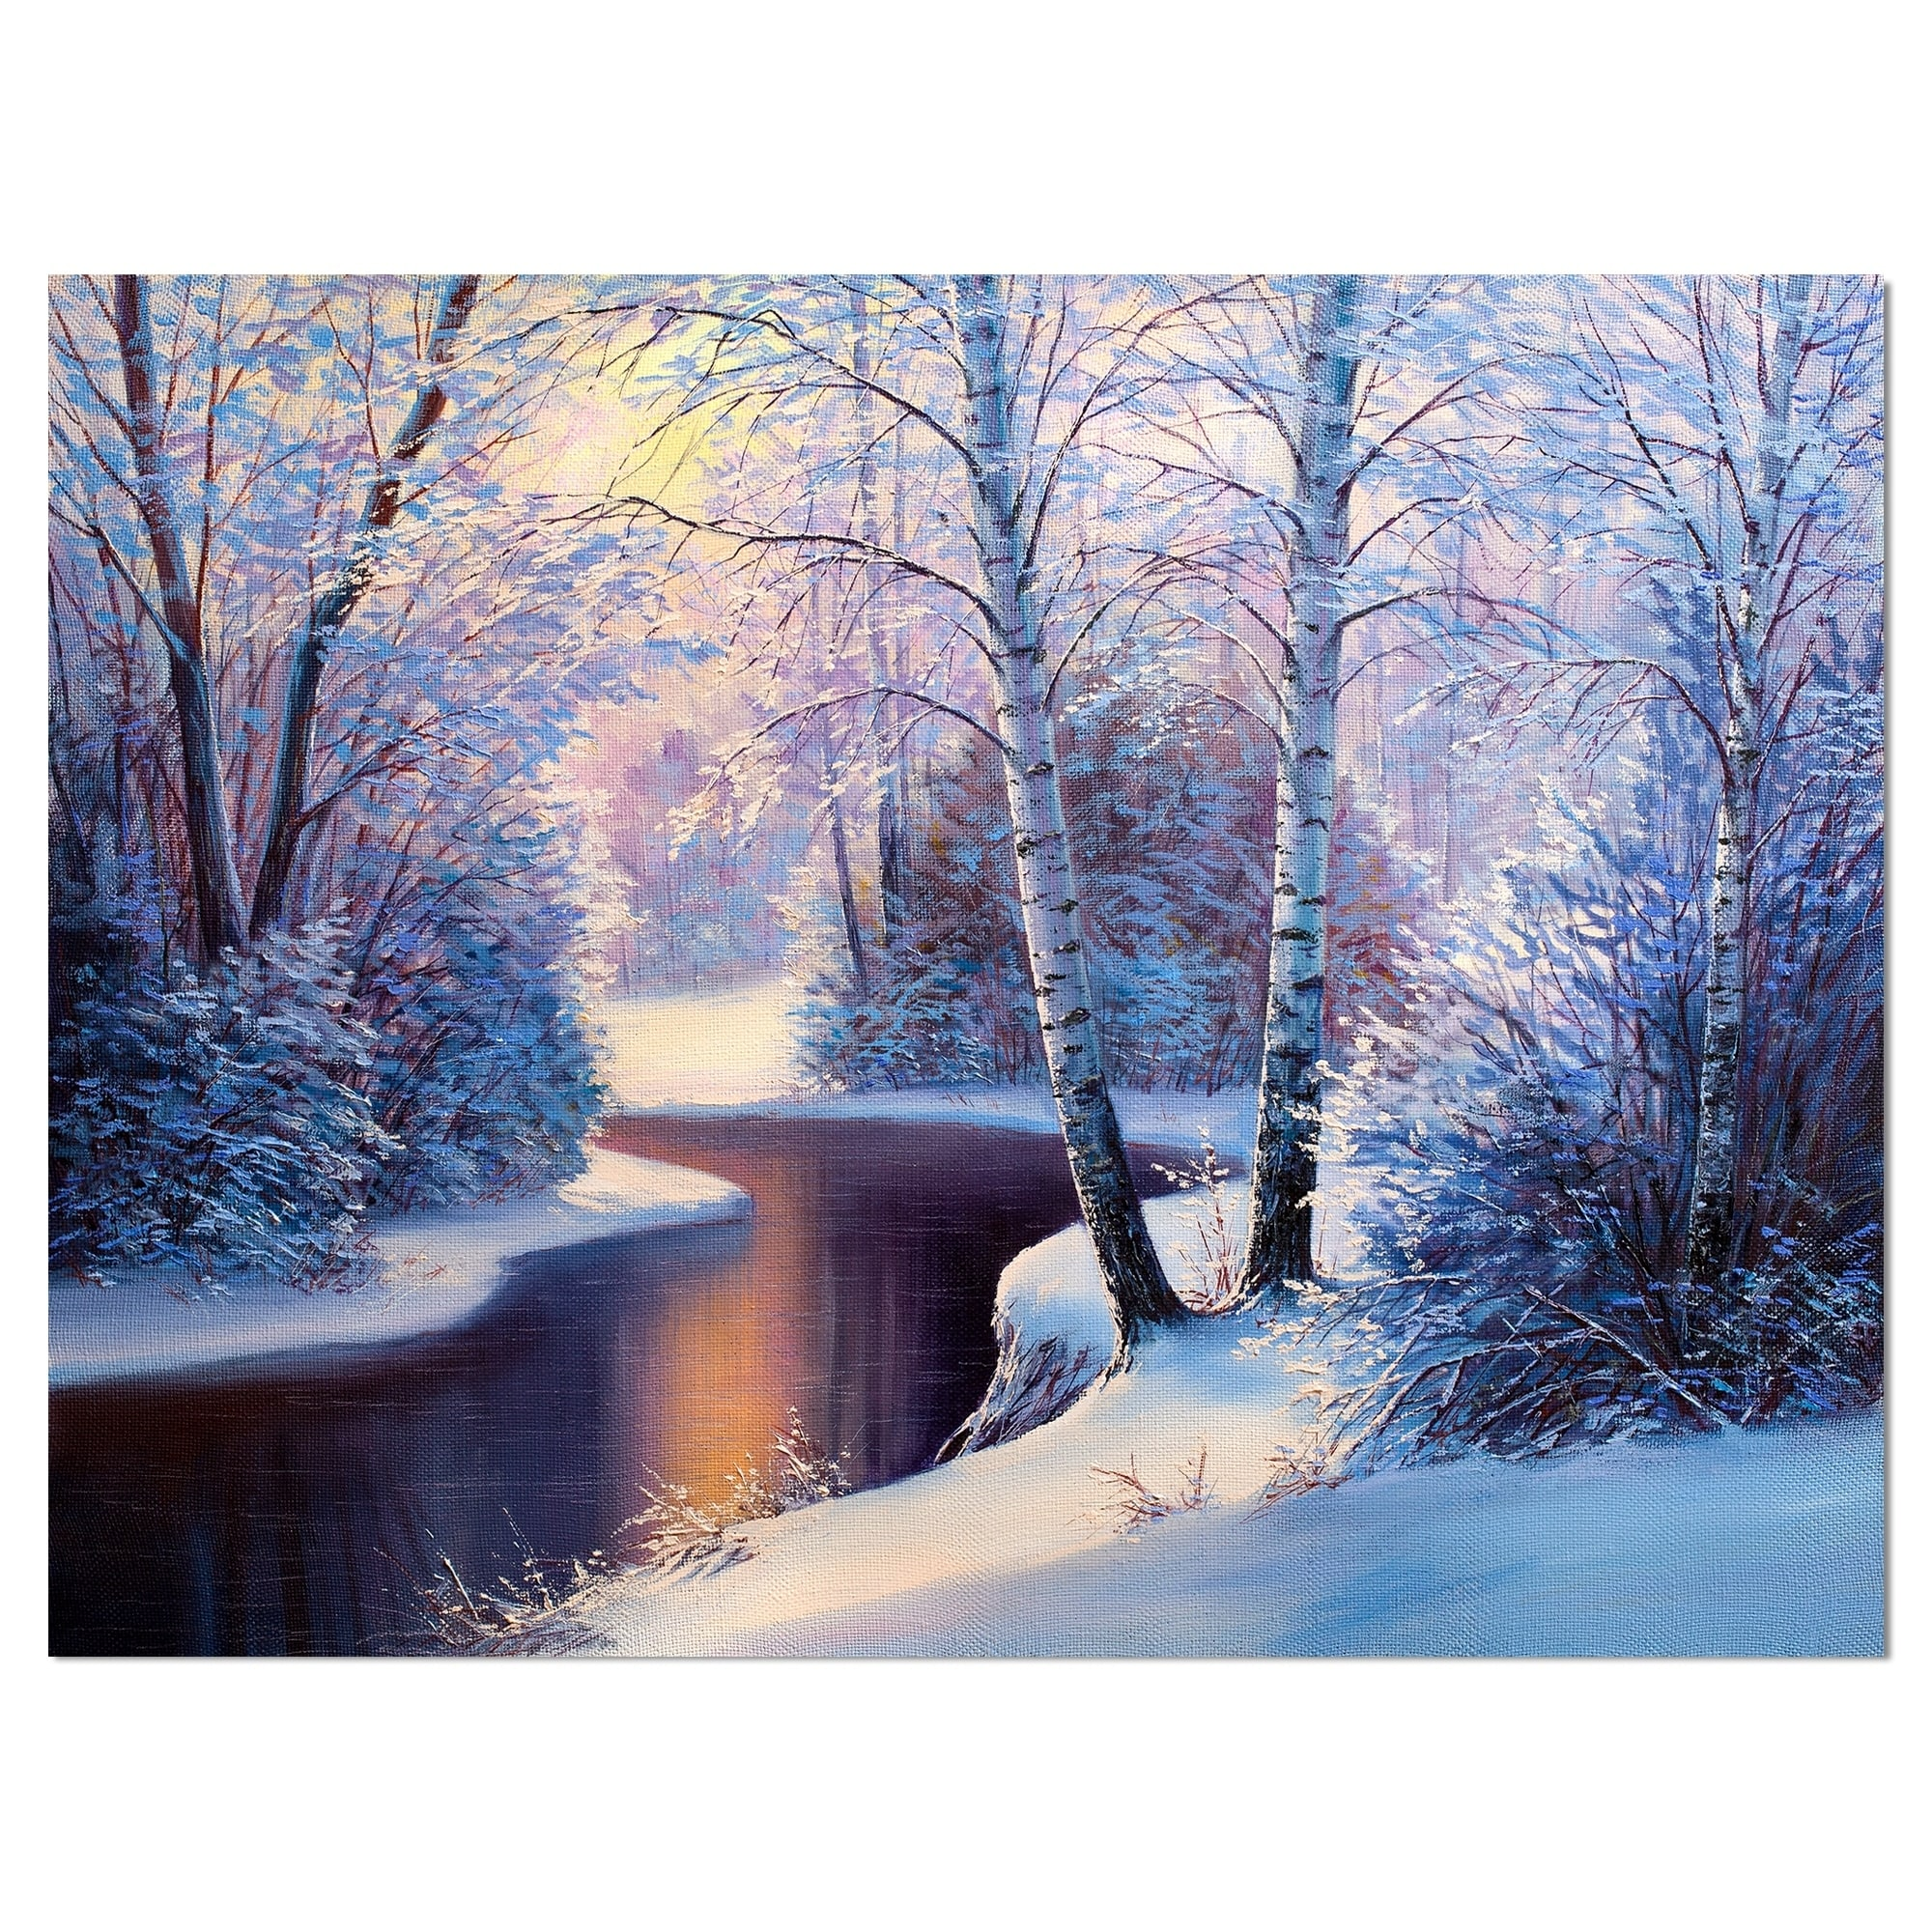 Design Art Designart Winter Forest In River Sunset Landscapes Painting Print On Wrapped Canvas White Walmart Com Walmart Com